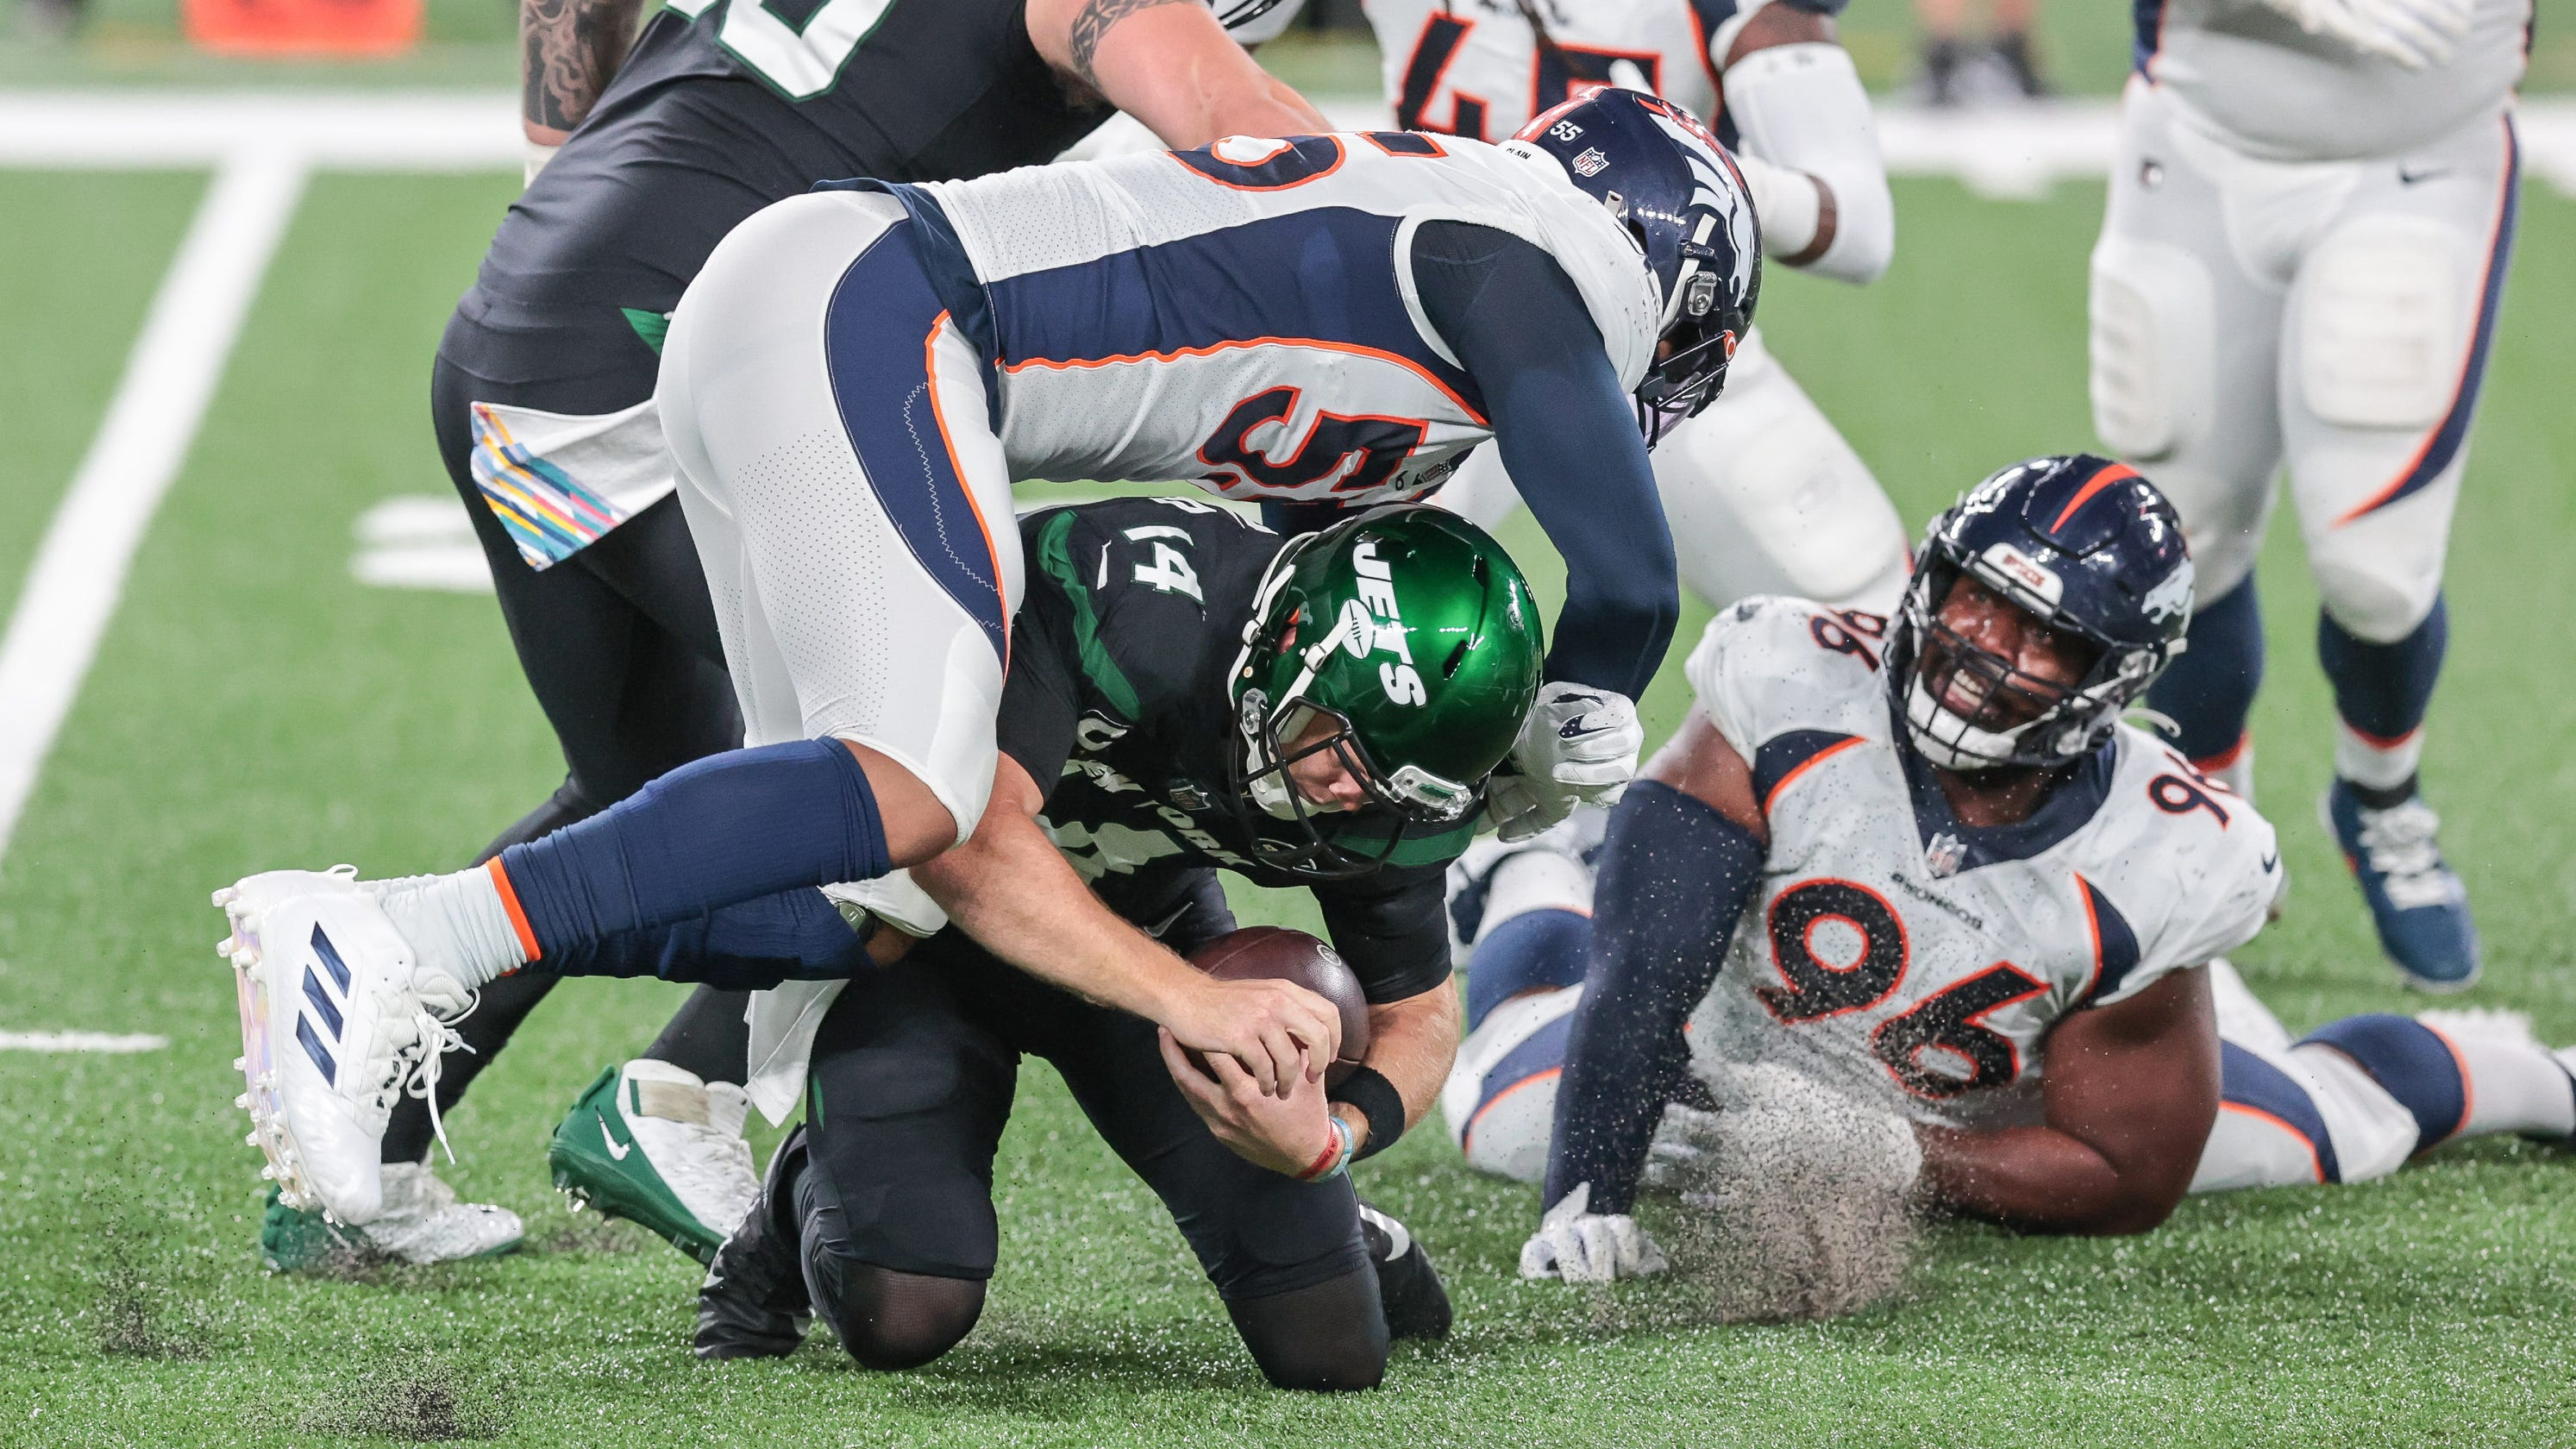 Jets fall to 0-4 as injury-ravaged Broncos pick up first win of year